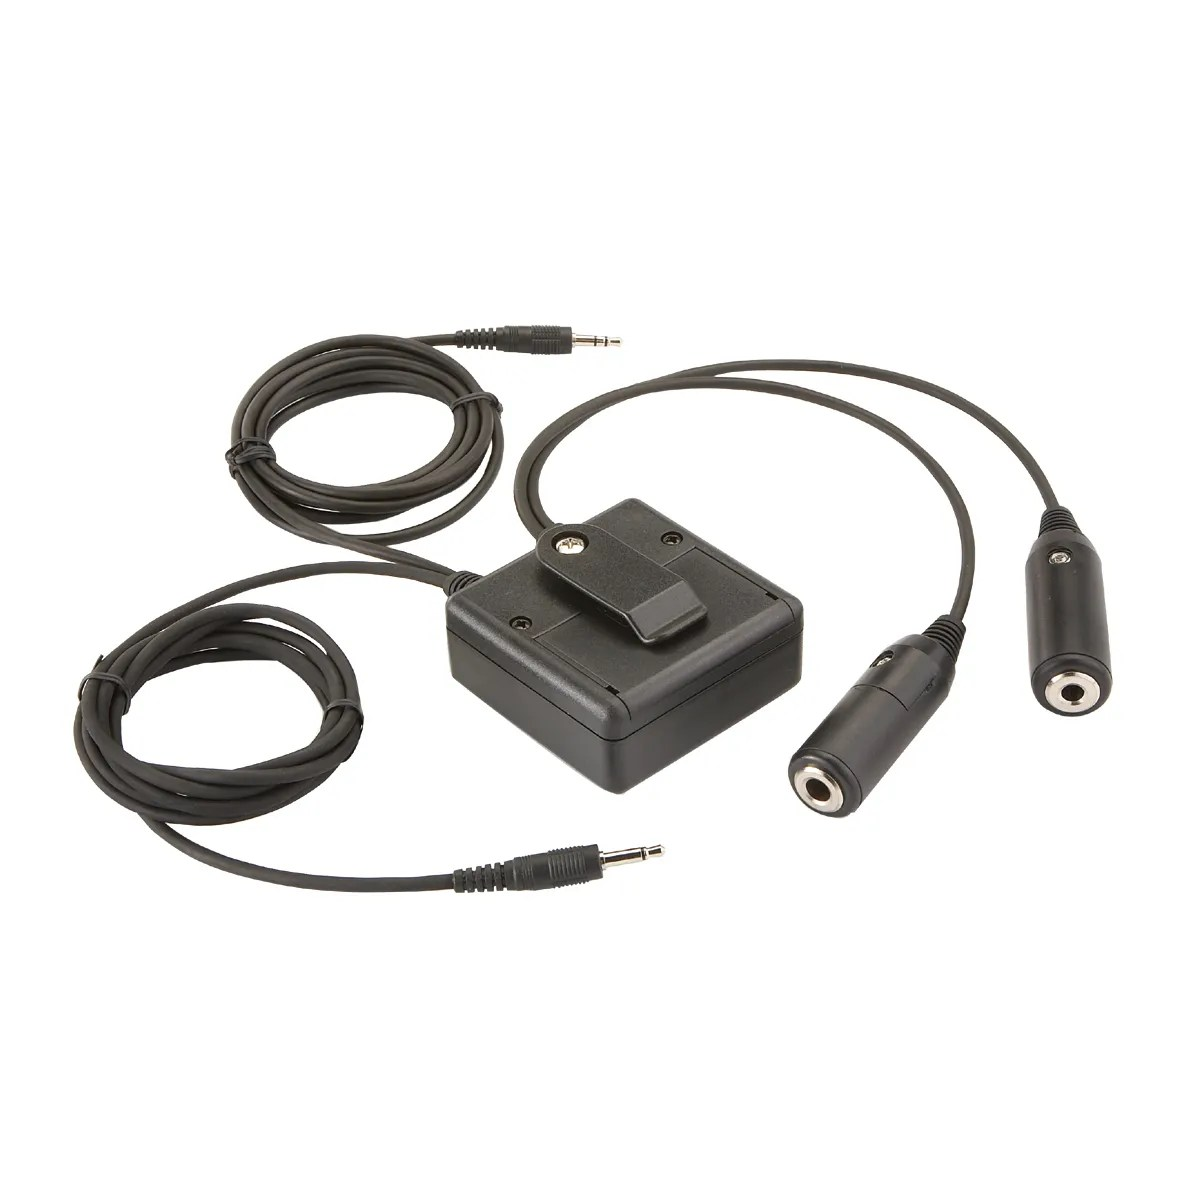 hight resolution of general aviation twin plugs to pc headset adapter from sporty s pilot shop